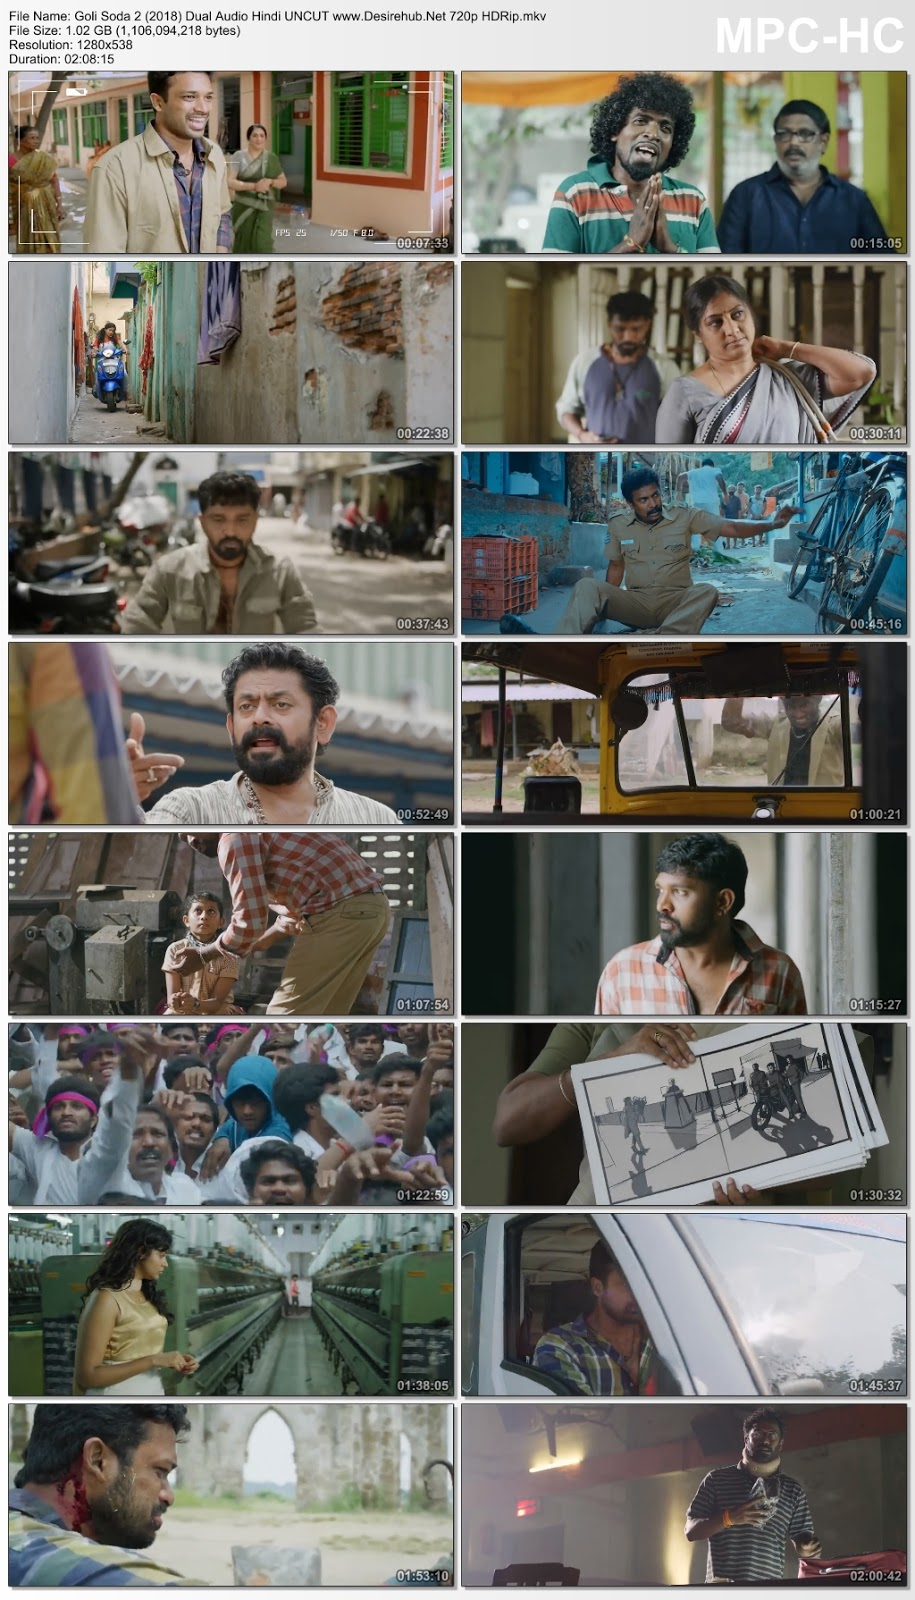 Goli Soda 2 (2018) Hindi Dubbed 720p HDRip 1GB Desirehub